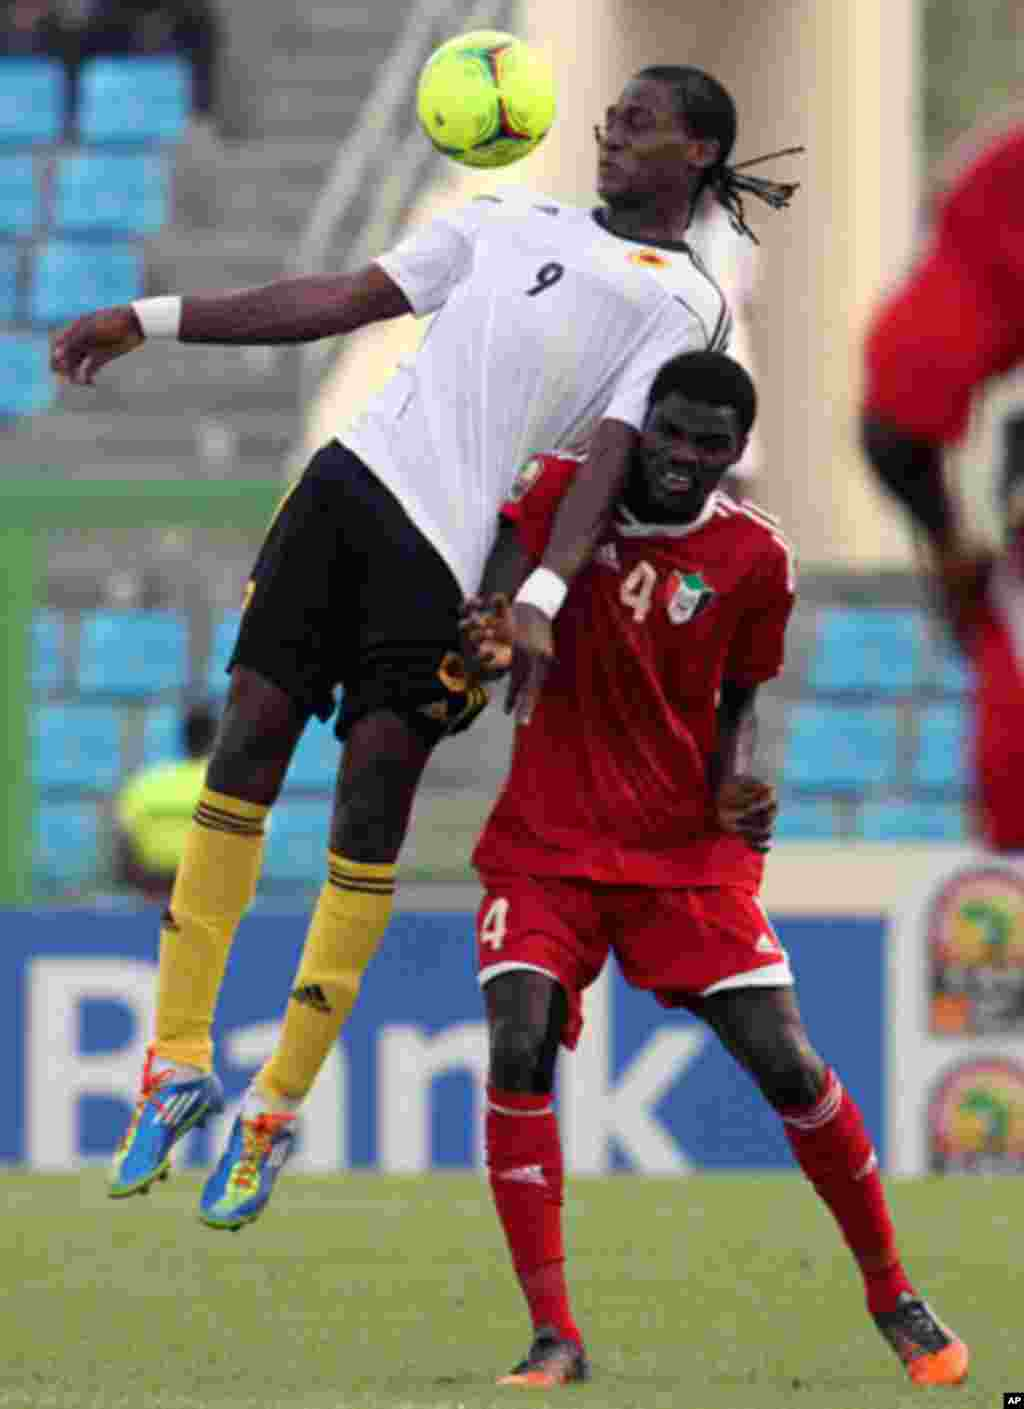 Manucho of Angola fights for the ball with Nagm Eldim of Sudan during their African Nations Cup soccer match in Malabo